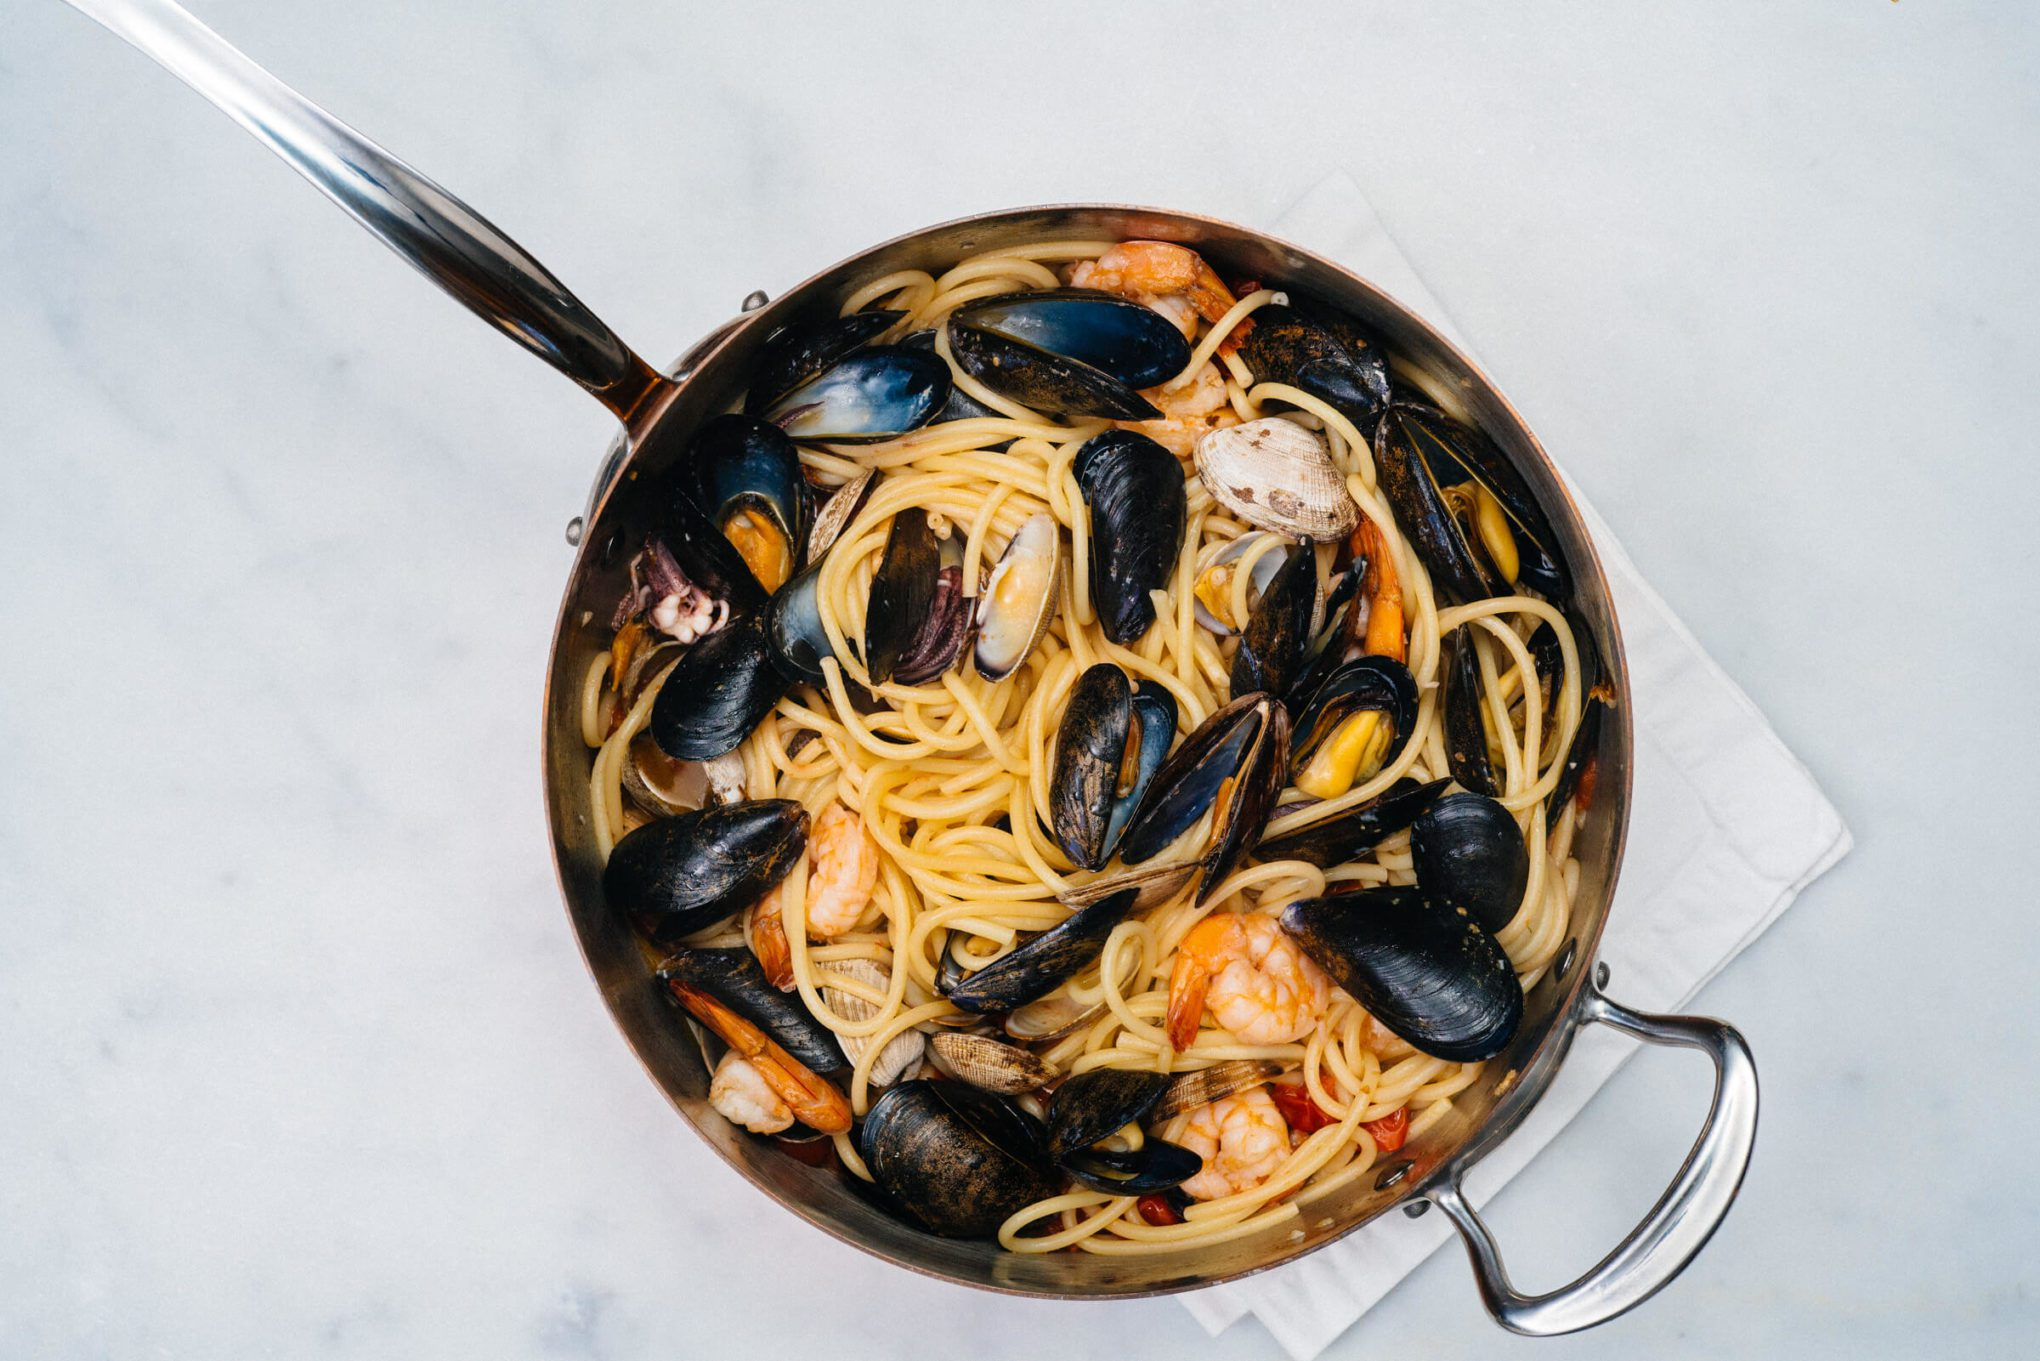 The Taste SF makes pasta from the rocks made with shellfish like shrimp, muscles, and clams